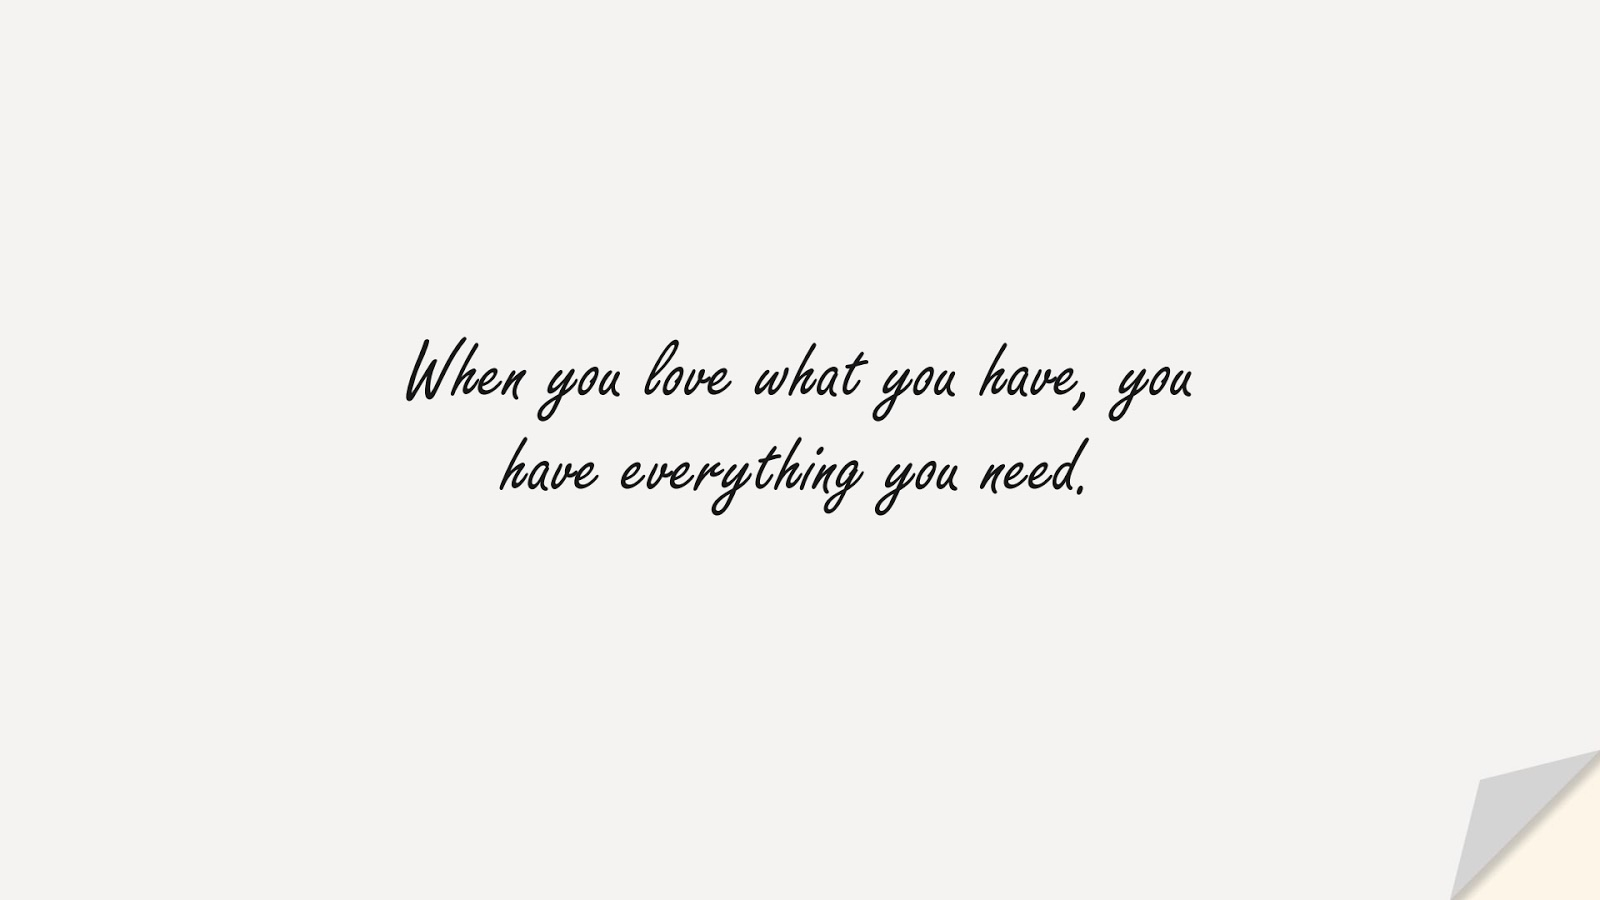 When you love what you have, you have everything you need.FALSE